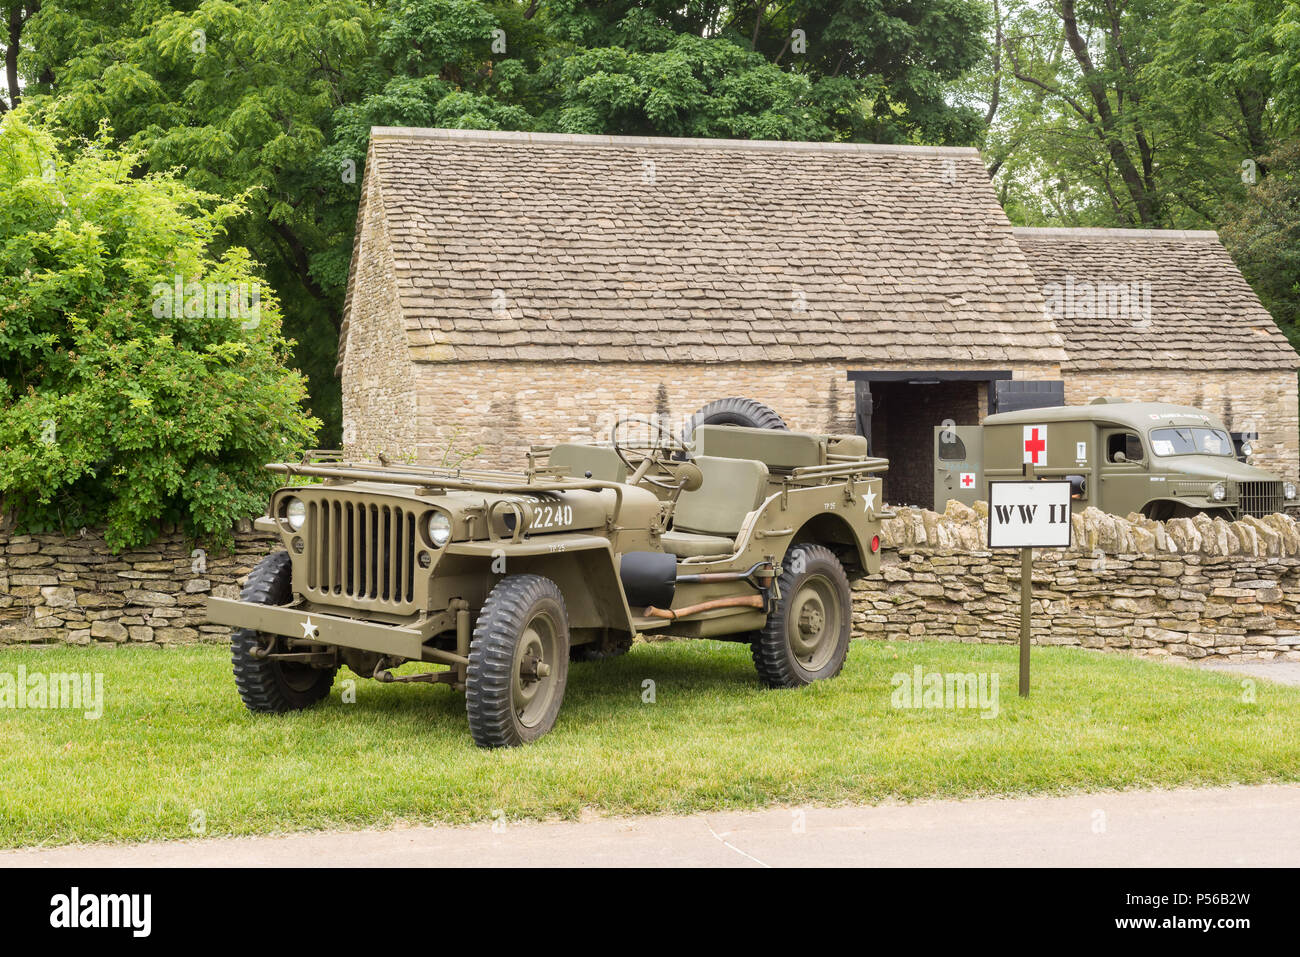 DEARBORN, MI/USA - JUNE 16, 2018: A 1942 Willys MB Jeep at the The Henry Ford (THF) Motor Muster show, at Greenfield Village, near Detroit, Michigan. - Stock Image